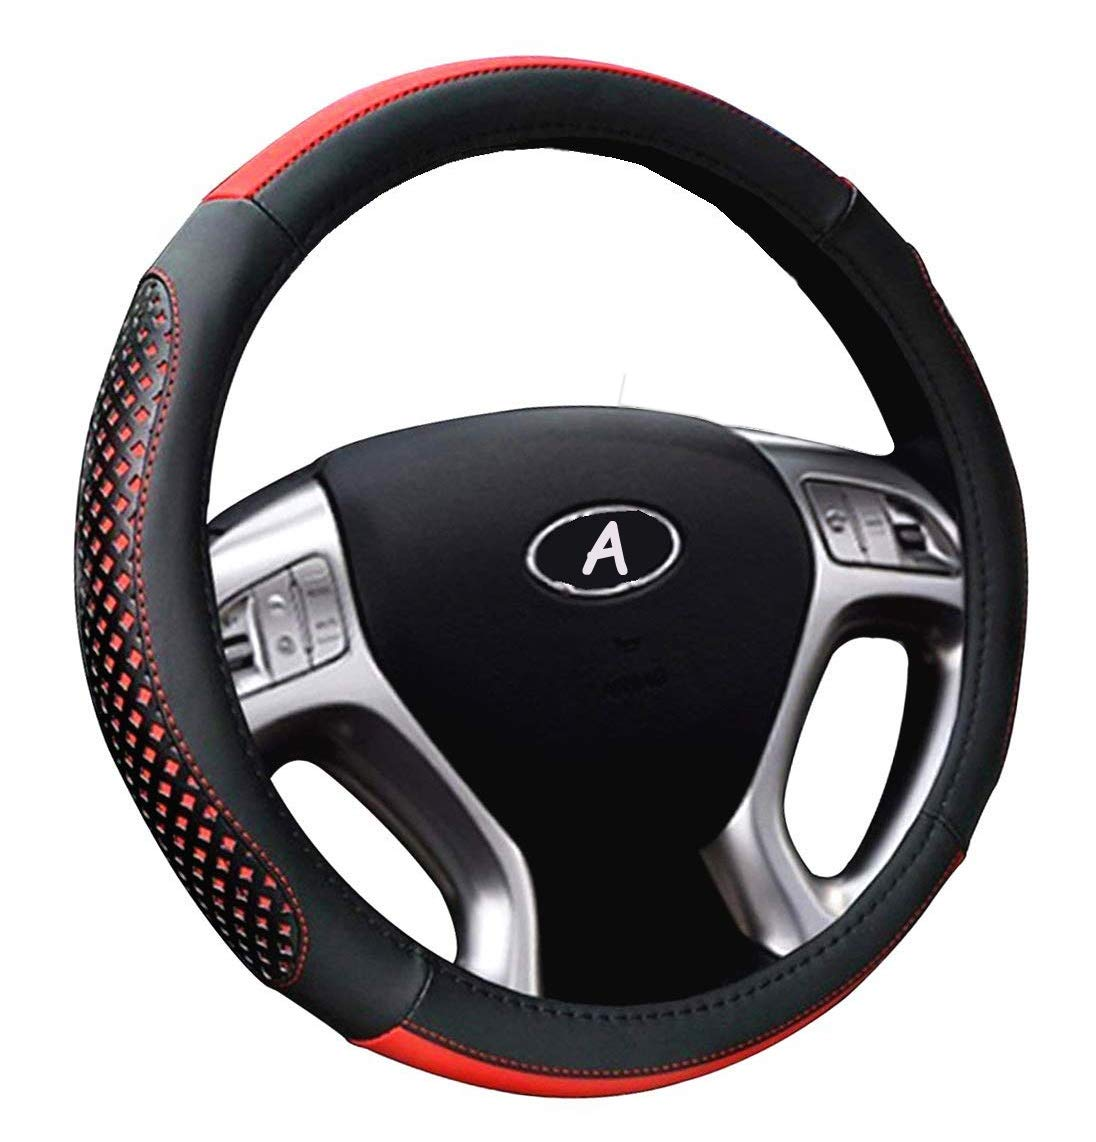 Steering Wheel Cover Microfiber Leather Universal 14.5 to 15 Cover Inch Auto Car Steering Wheel Cover for Girls and Women